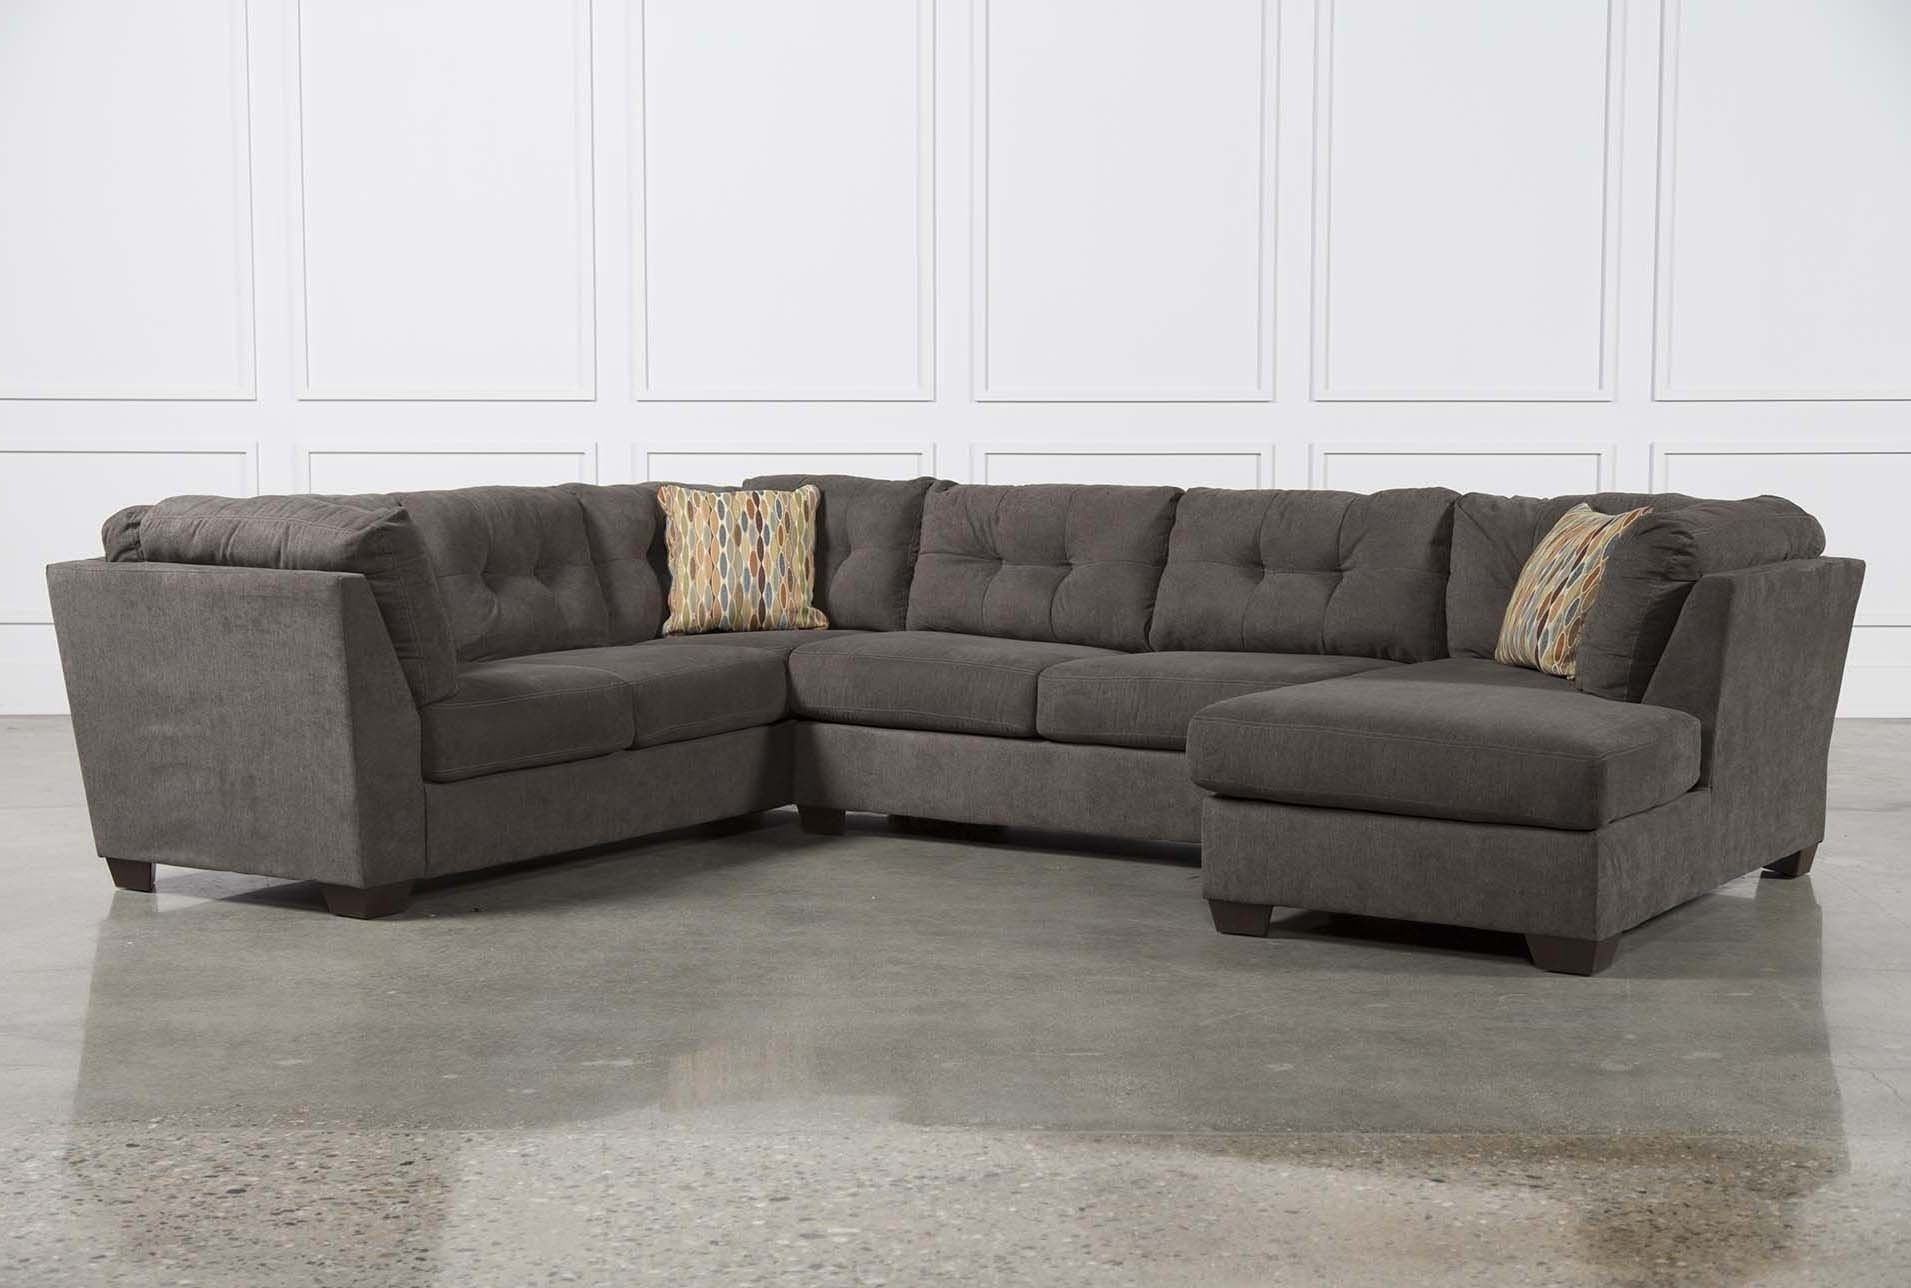 3 Piece Sectional Sleeper Sofas | Sleeper Sofas With Harper Down 3 Piece Sectionals (Photo 5 of 25)